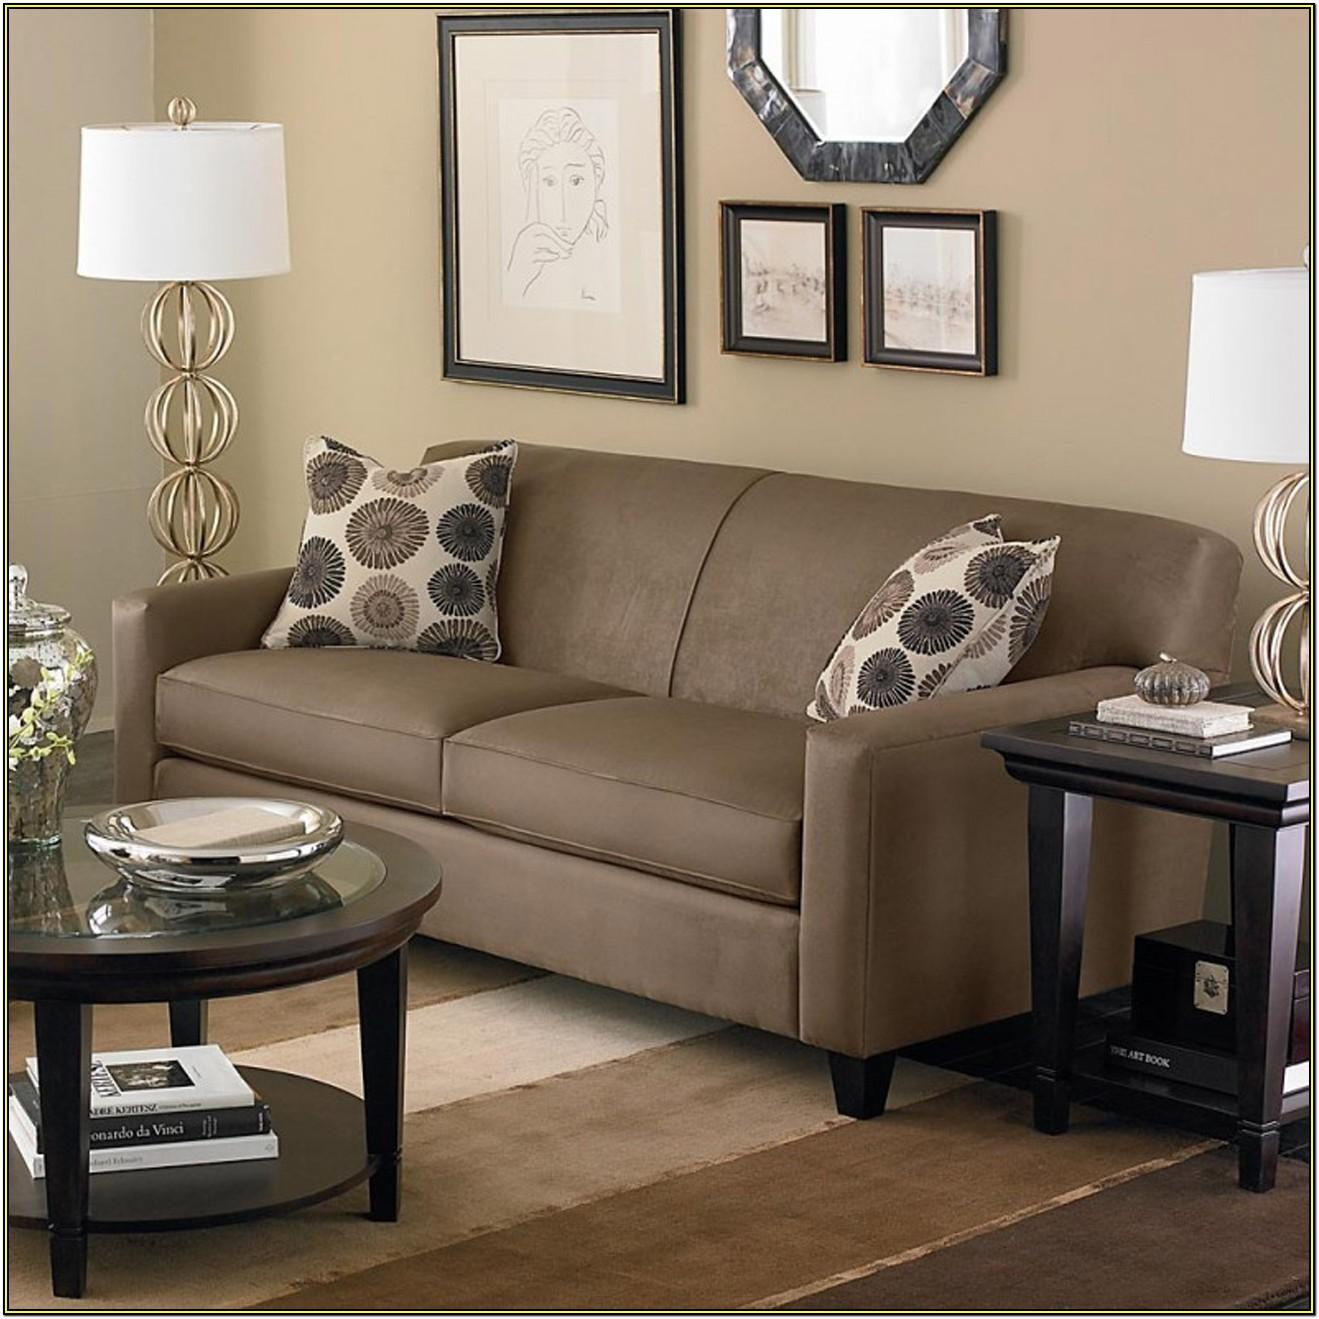 Living Room Furniture Decorating Tips